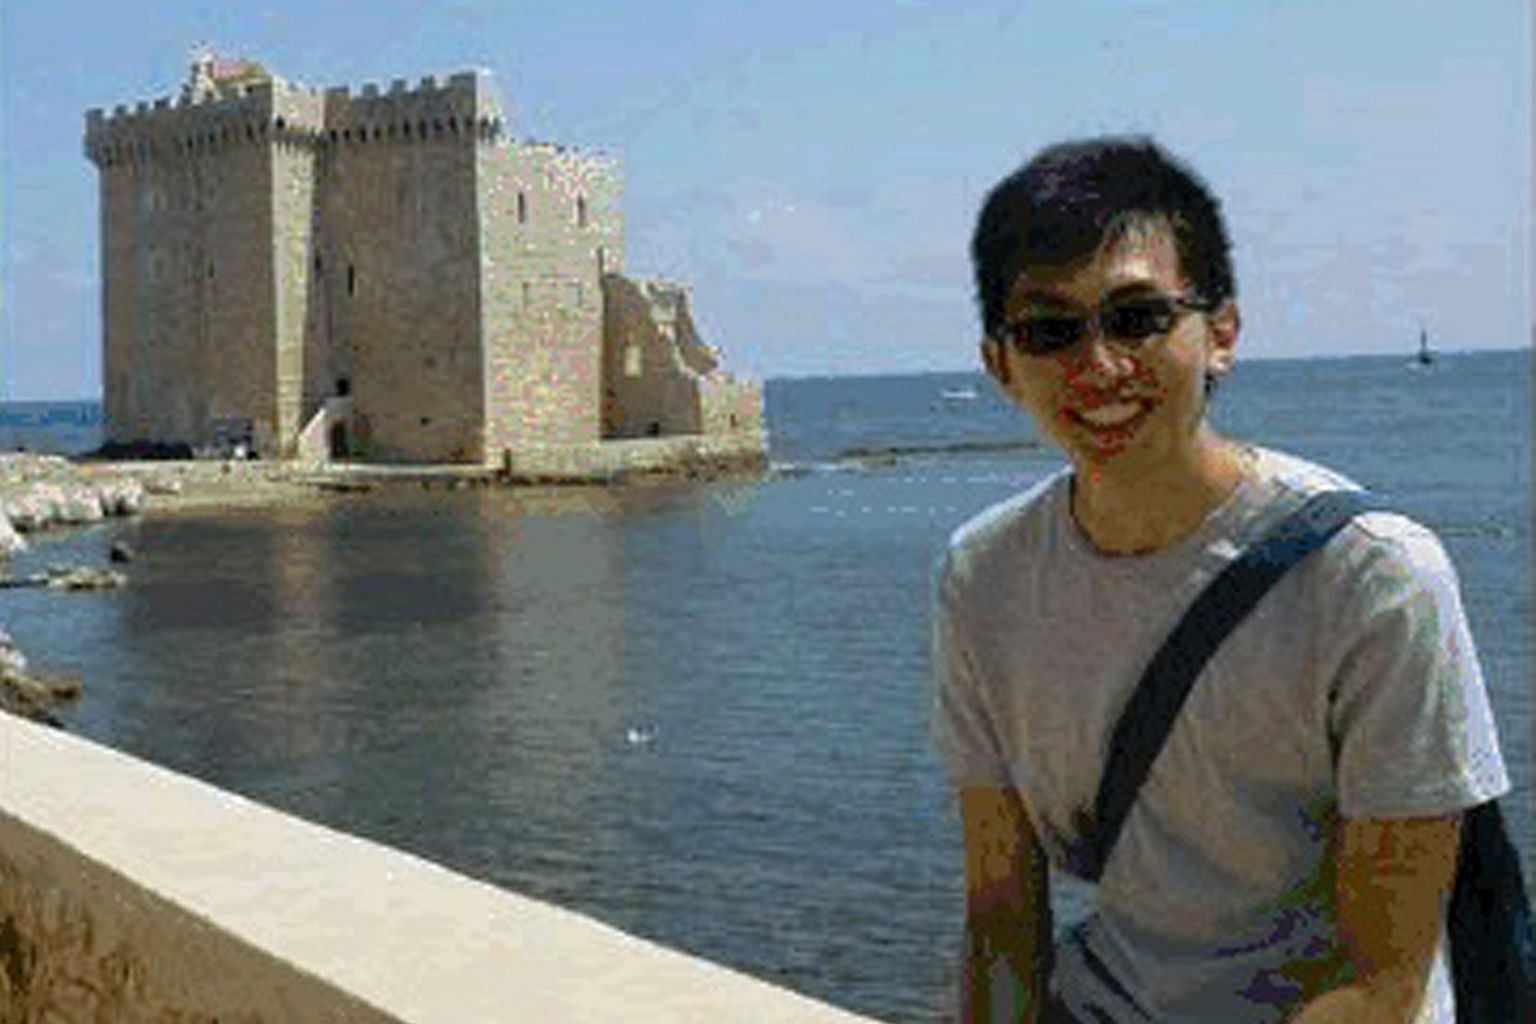 """Mr Chuah, an SUTD student whose back was injured in the Bastille Day attack in Nice, France, says the city has shown him the """"strength, warmth and support of the locals in times of need""""."""